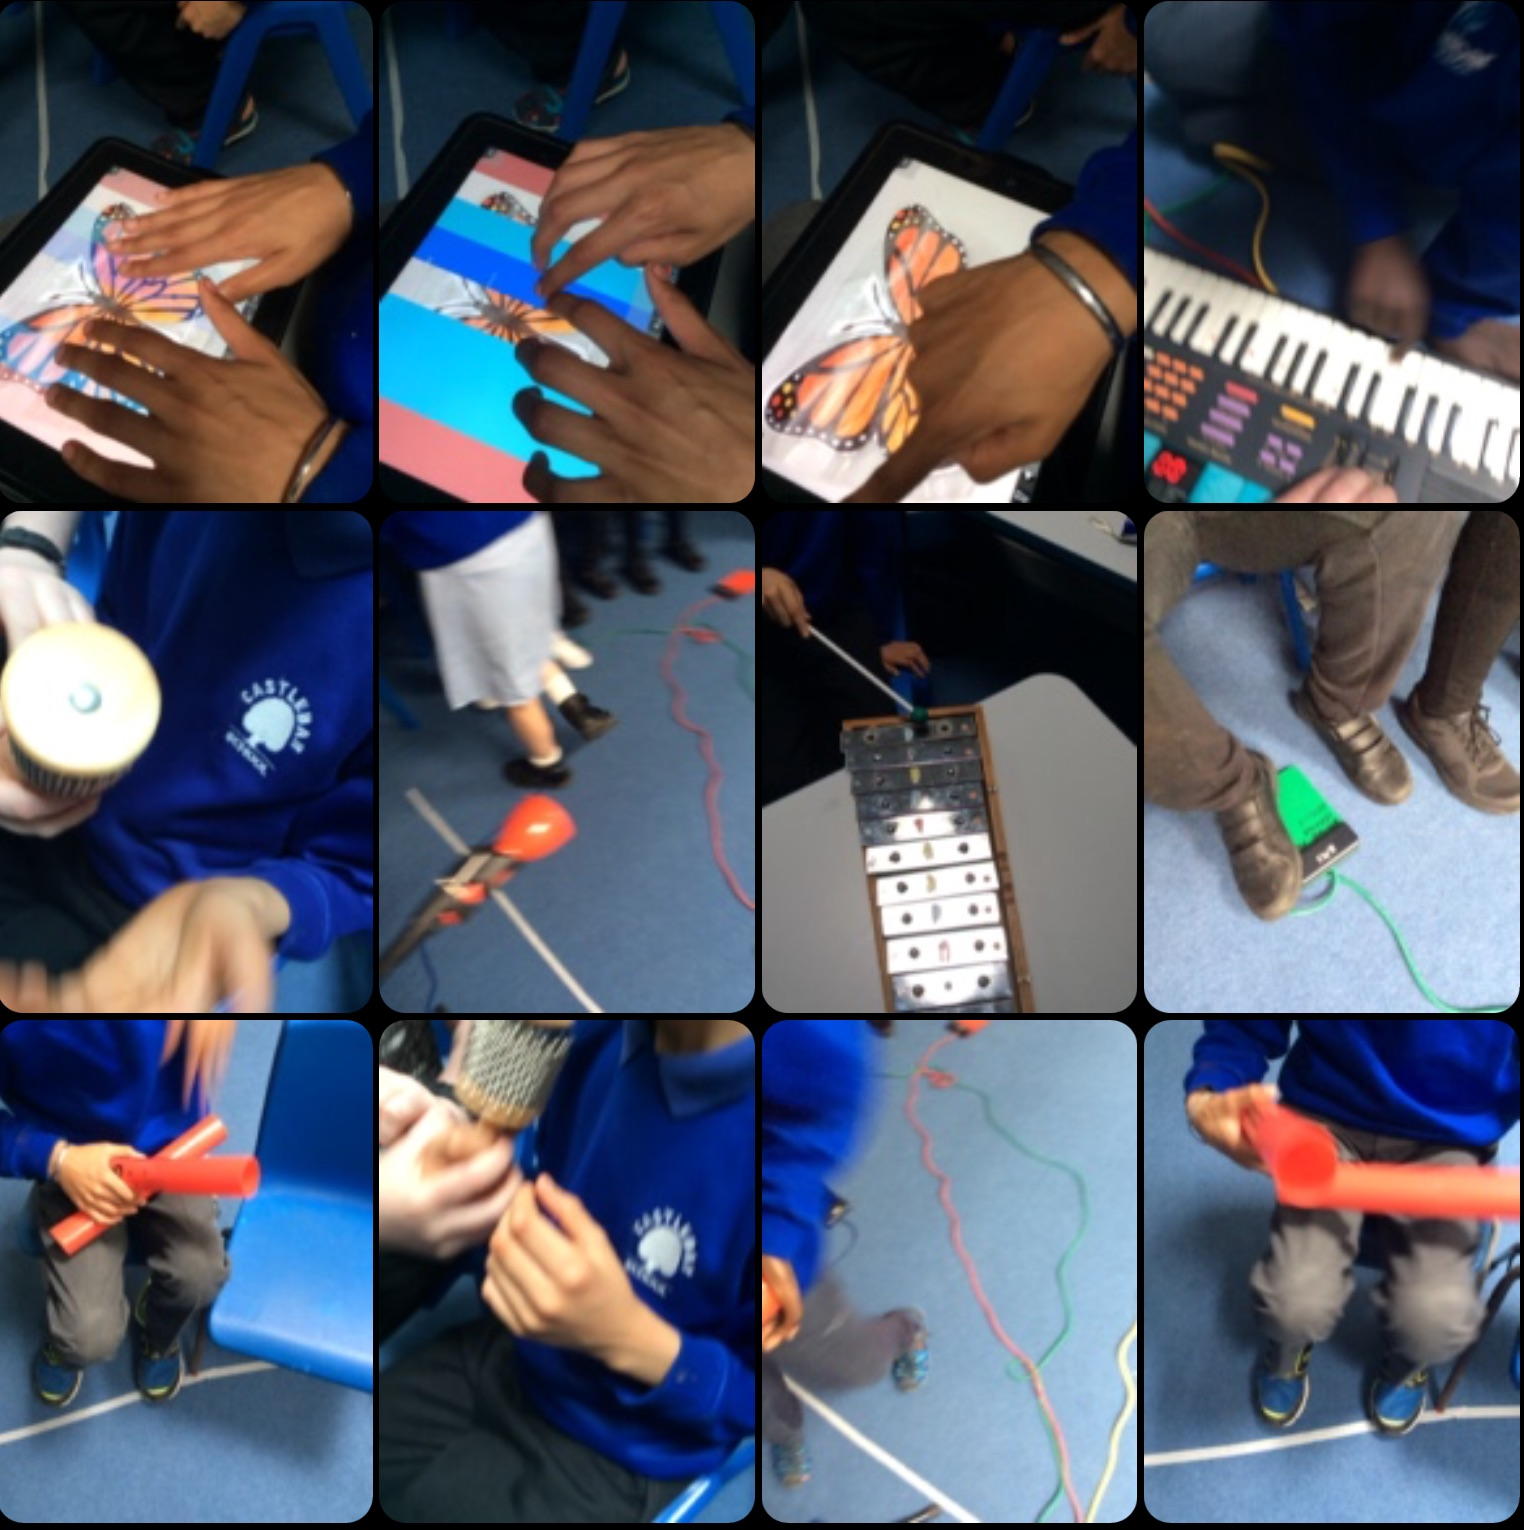 Video screenshot from the Mad Pad app showing 12 squares of different images of instruments